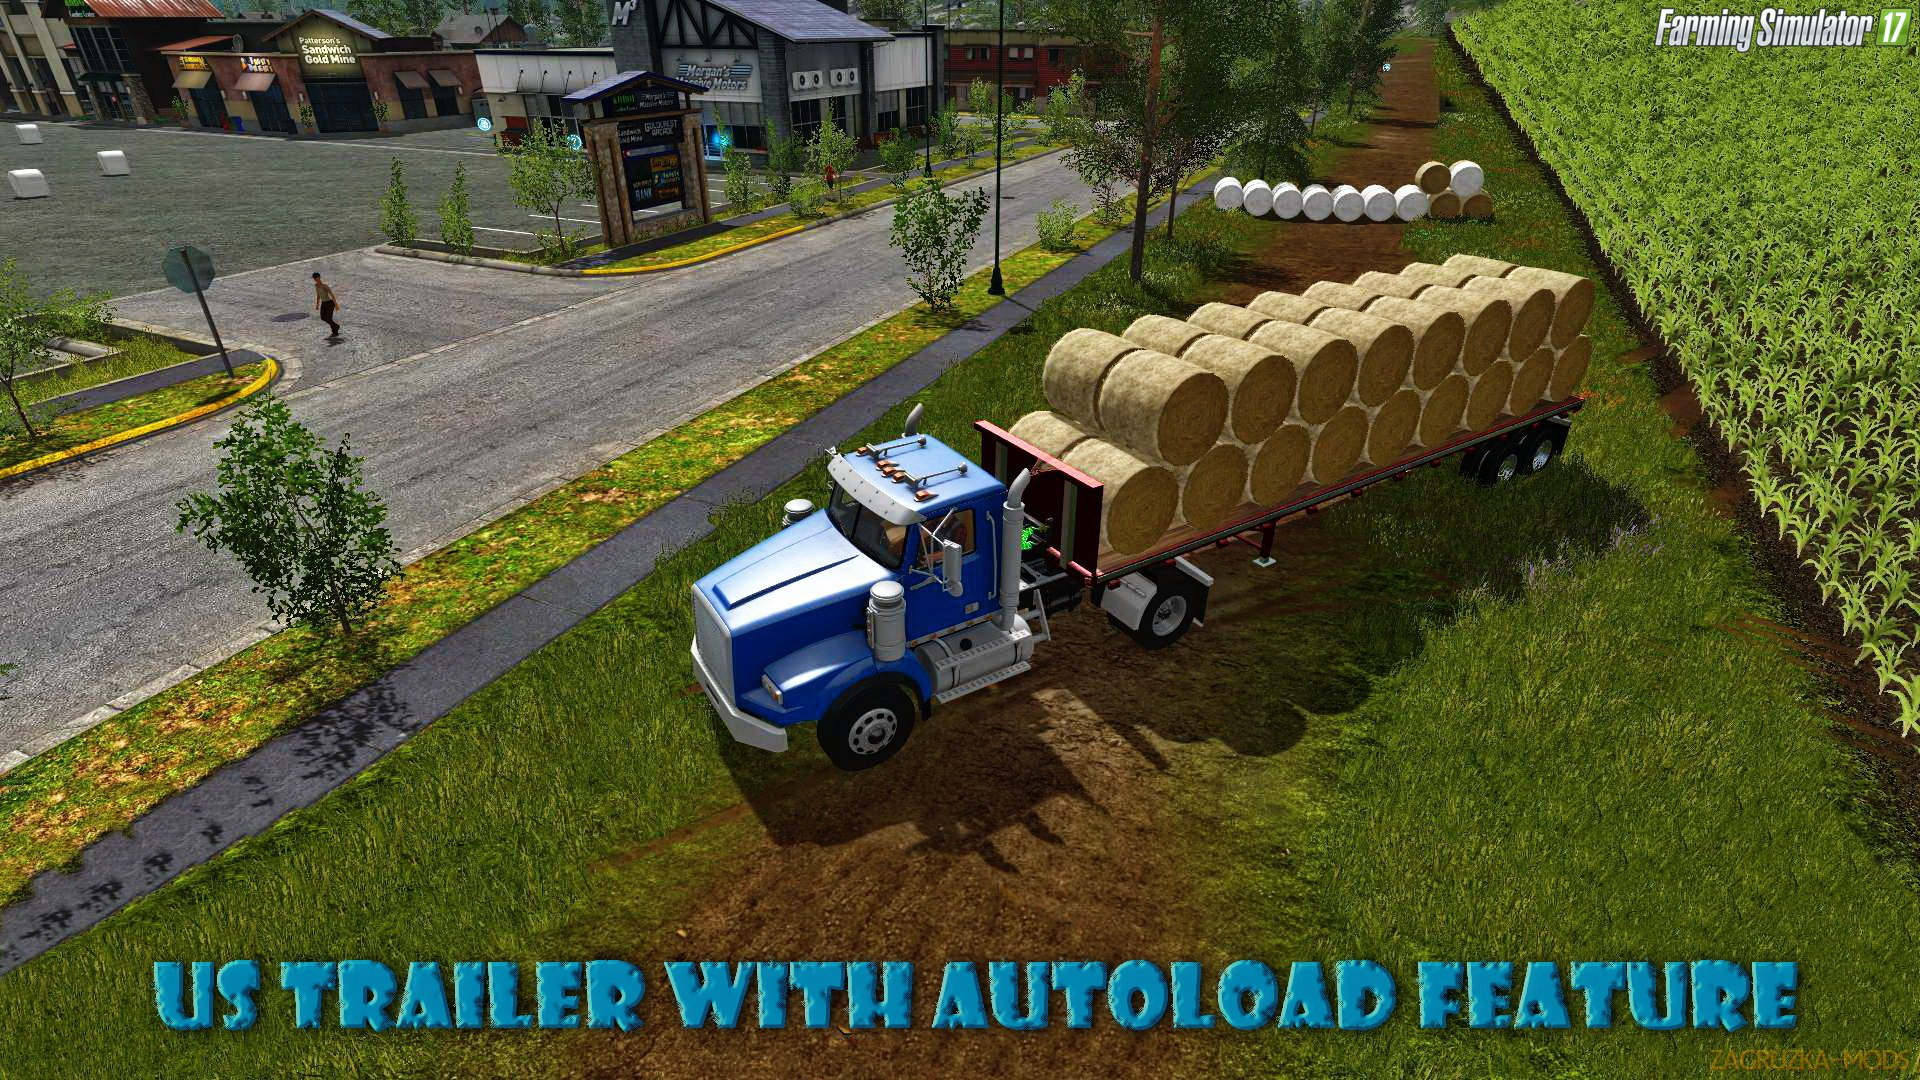 US Trailer With Autoload Feature v3.0 for FS 17